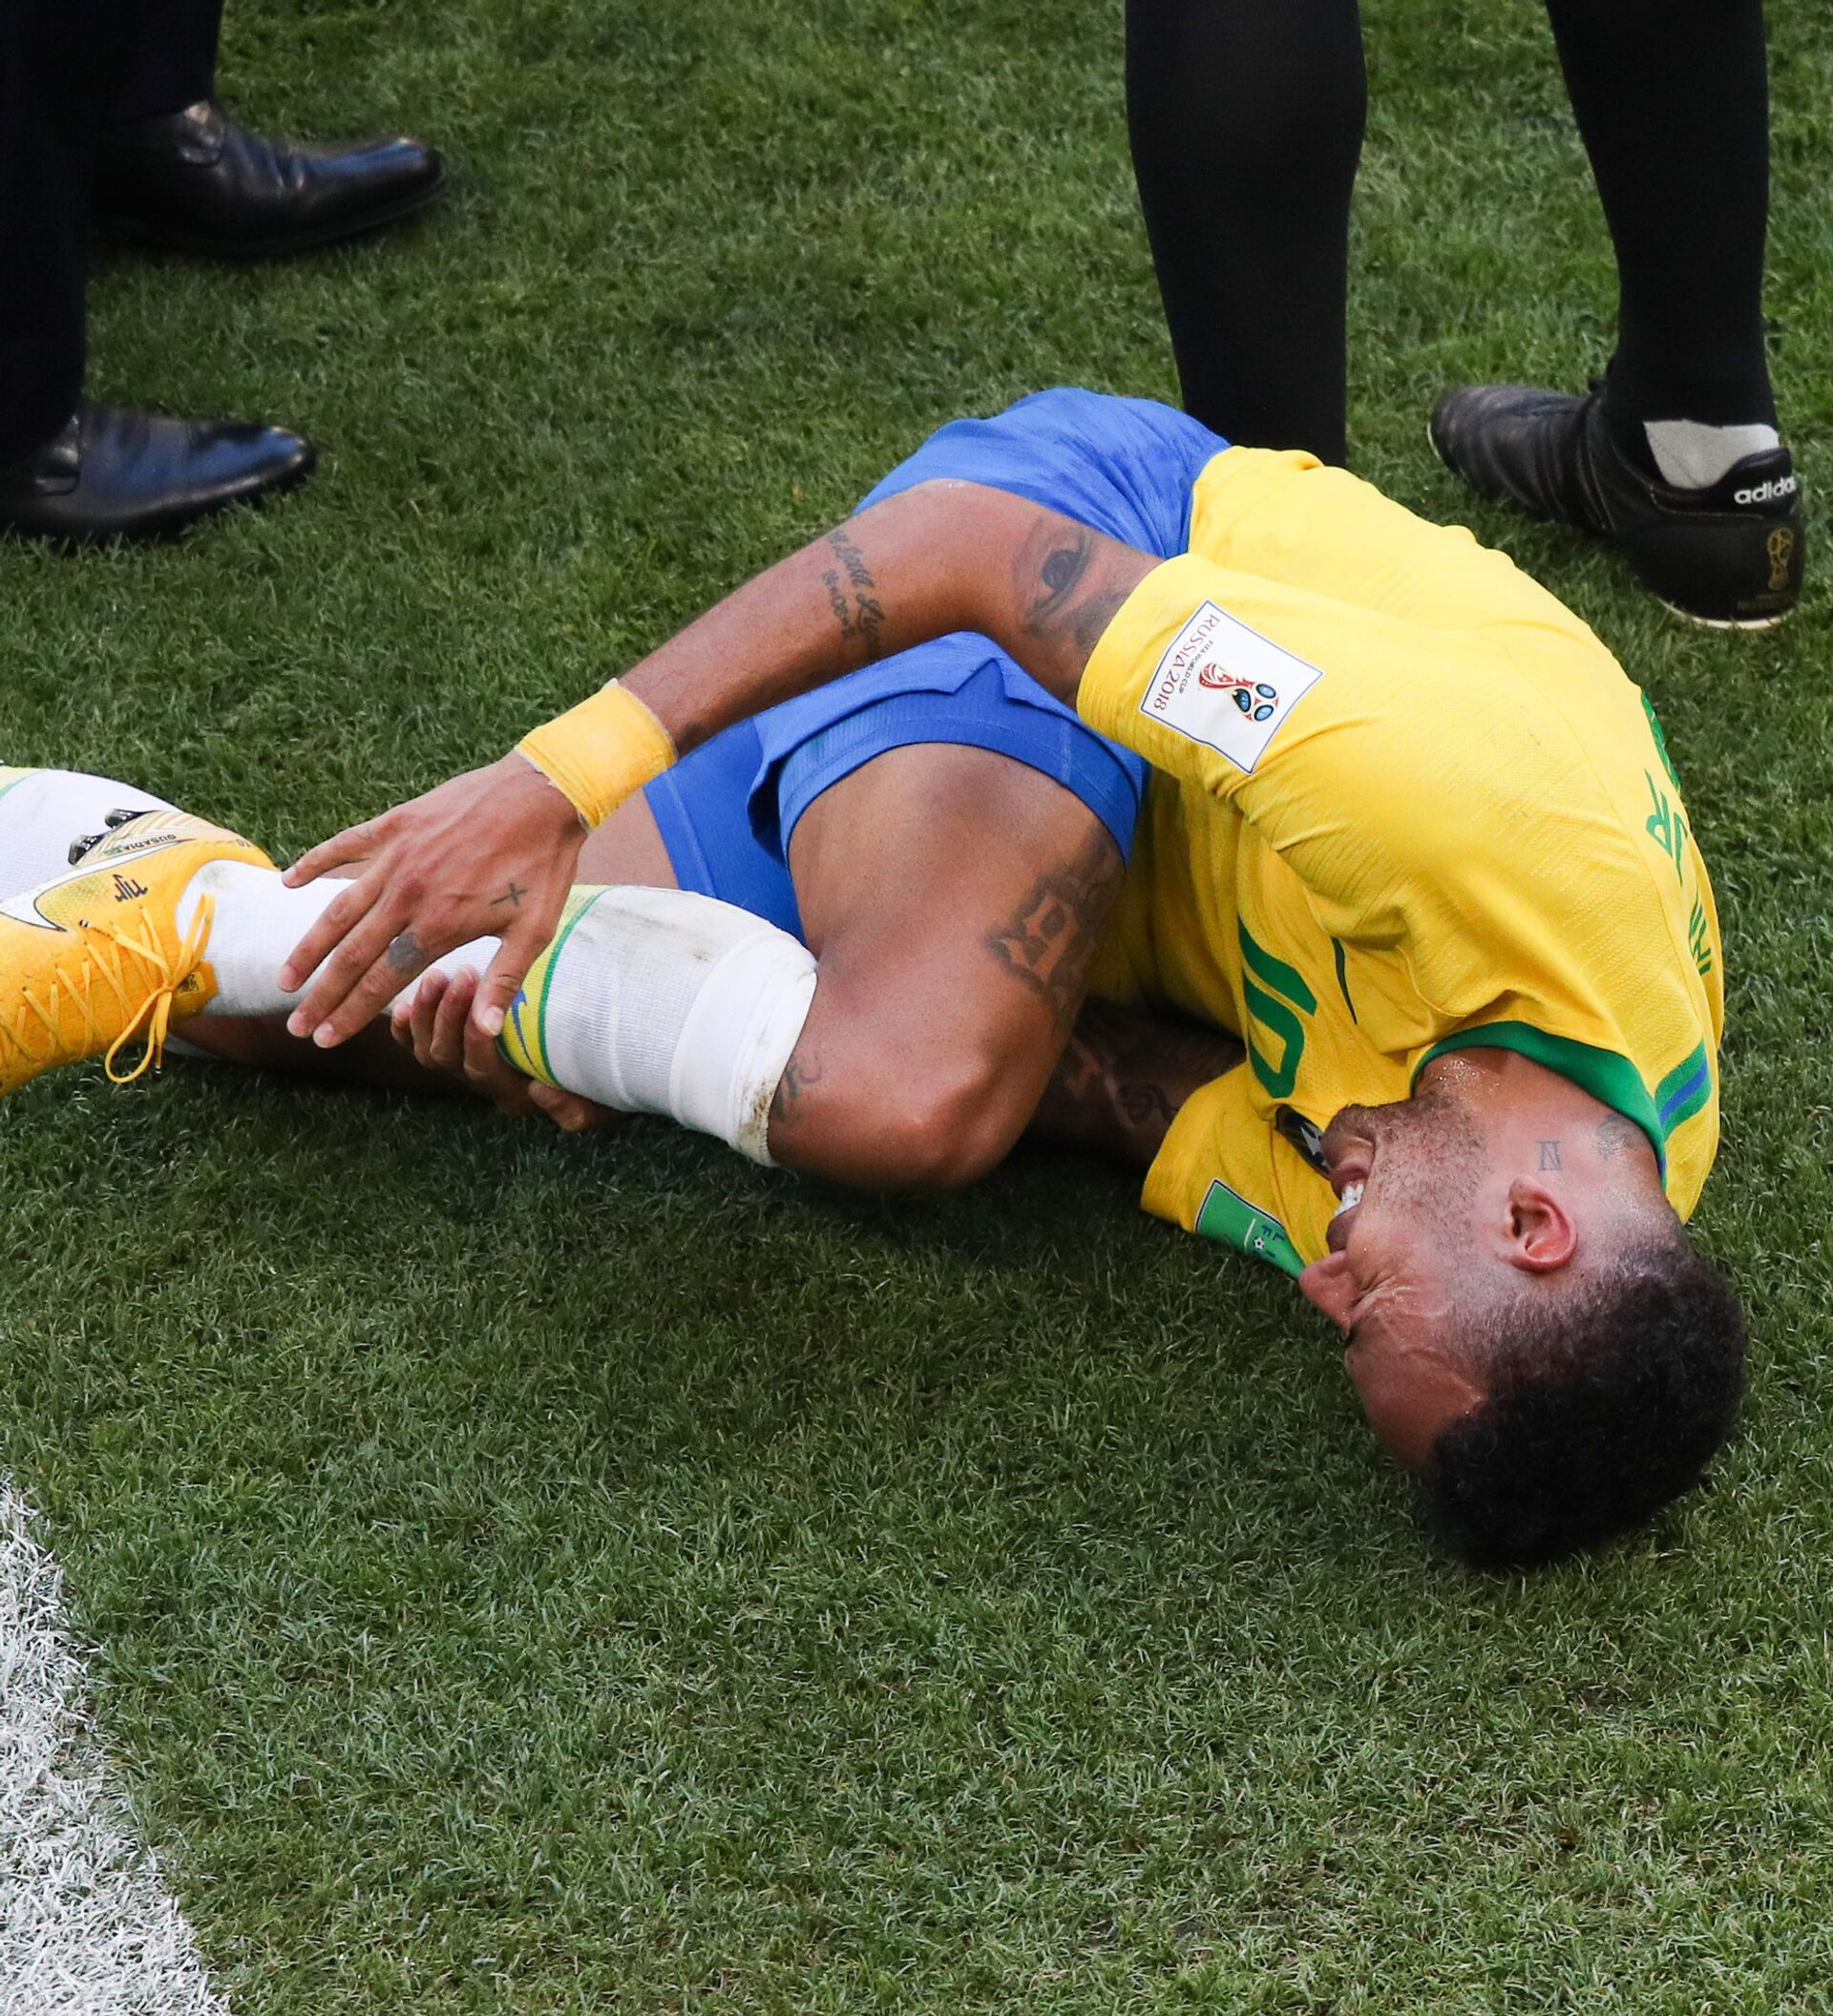 Emil cohen and 1,120 others like this. Watch French Football Legend Cantona Mock Neymar Over His World Cup Play Acting 04 07 2018 Sputnik International